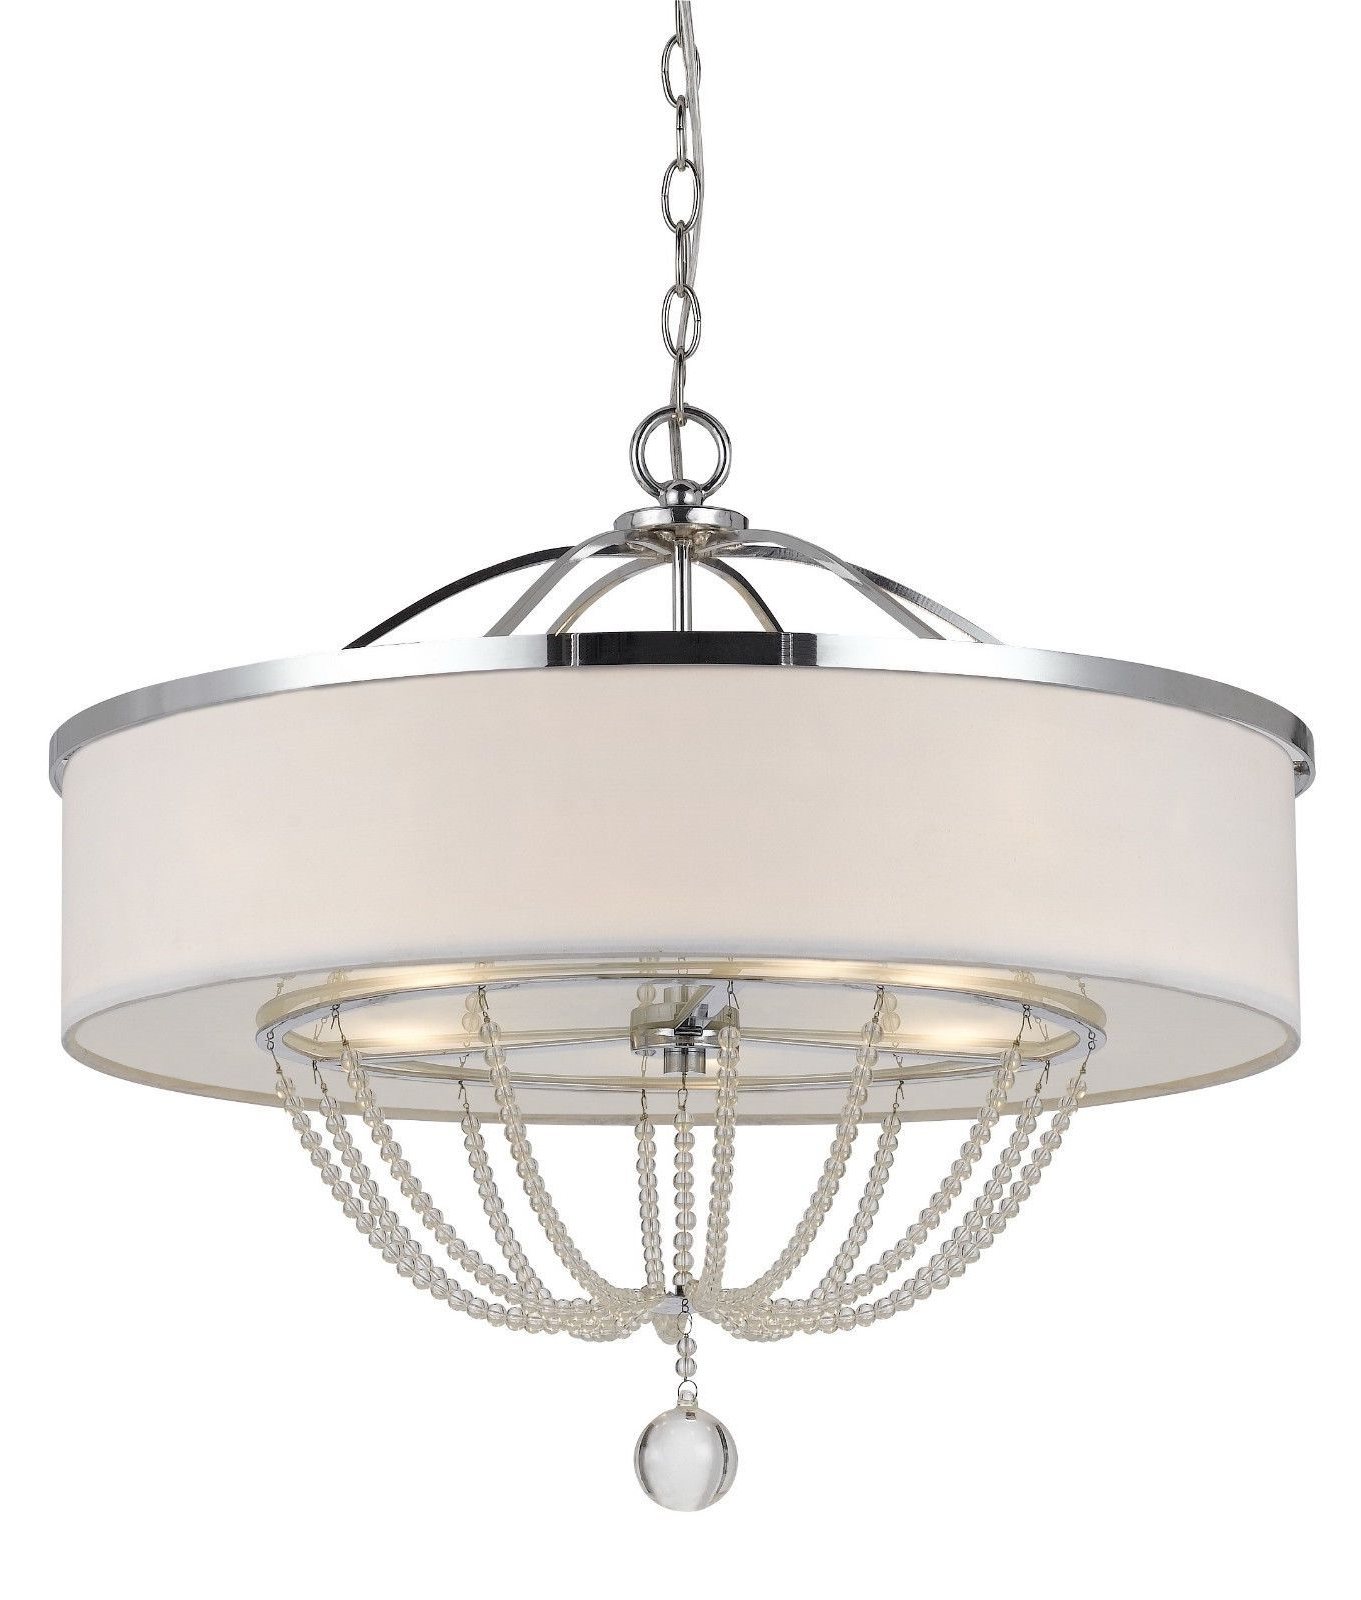 Modern White Chandelier Pertaining To Widely Used Modern White Fabric With Chrome Metal & Crystals Drum Pendant Light (View 9 of 15)